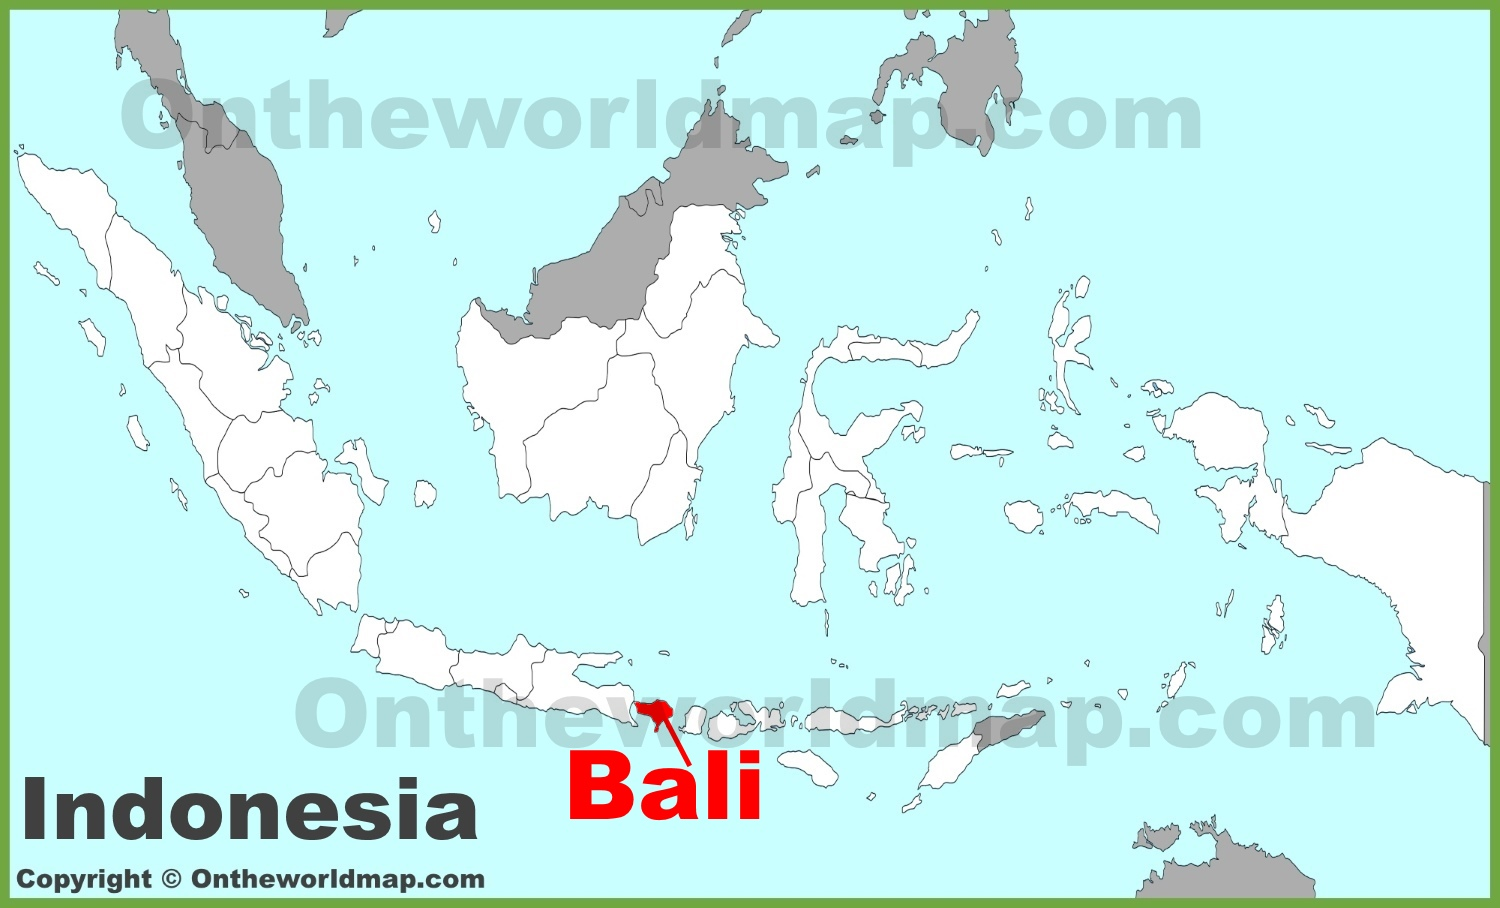 Bali location on the ireland map bali location on the ireland map gumiabroncs Image collections